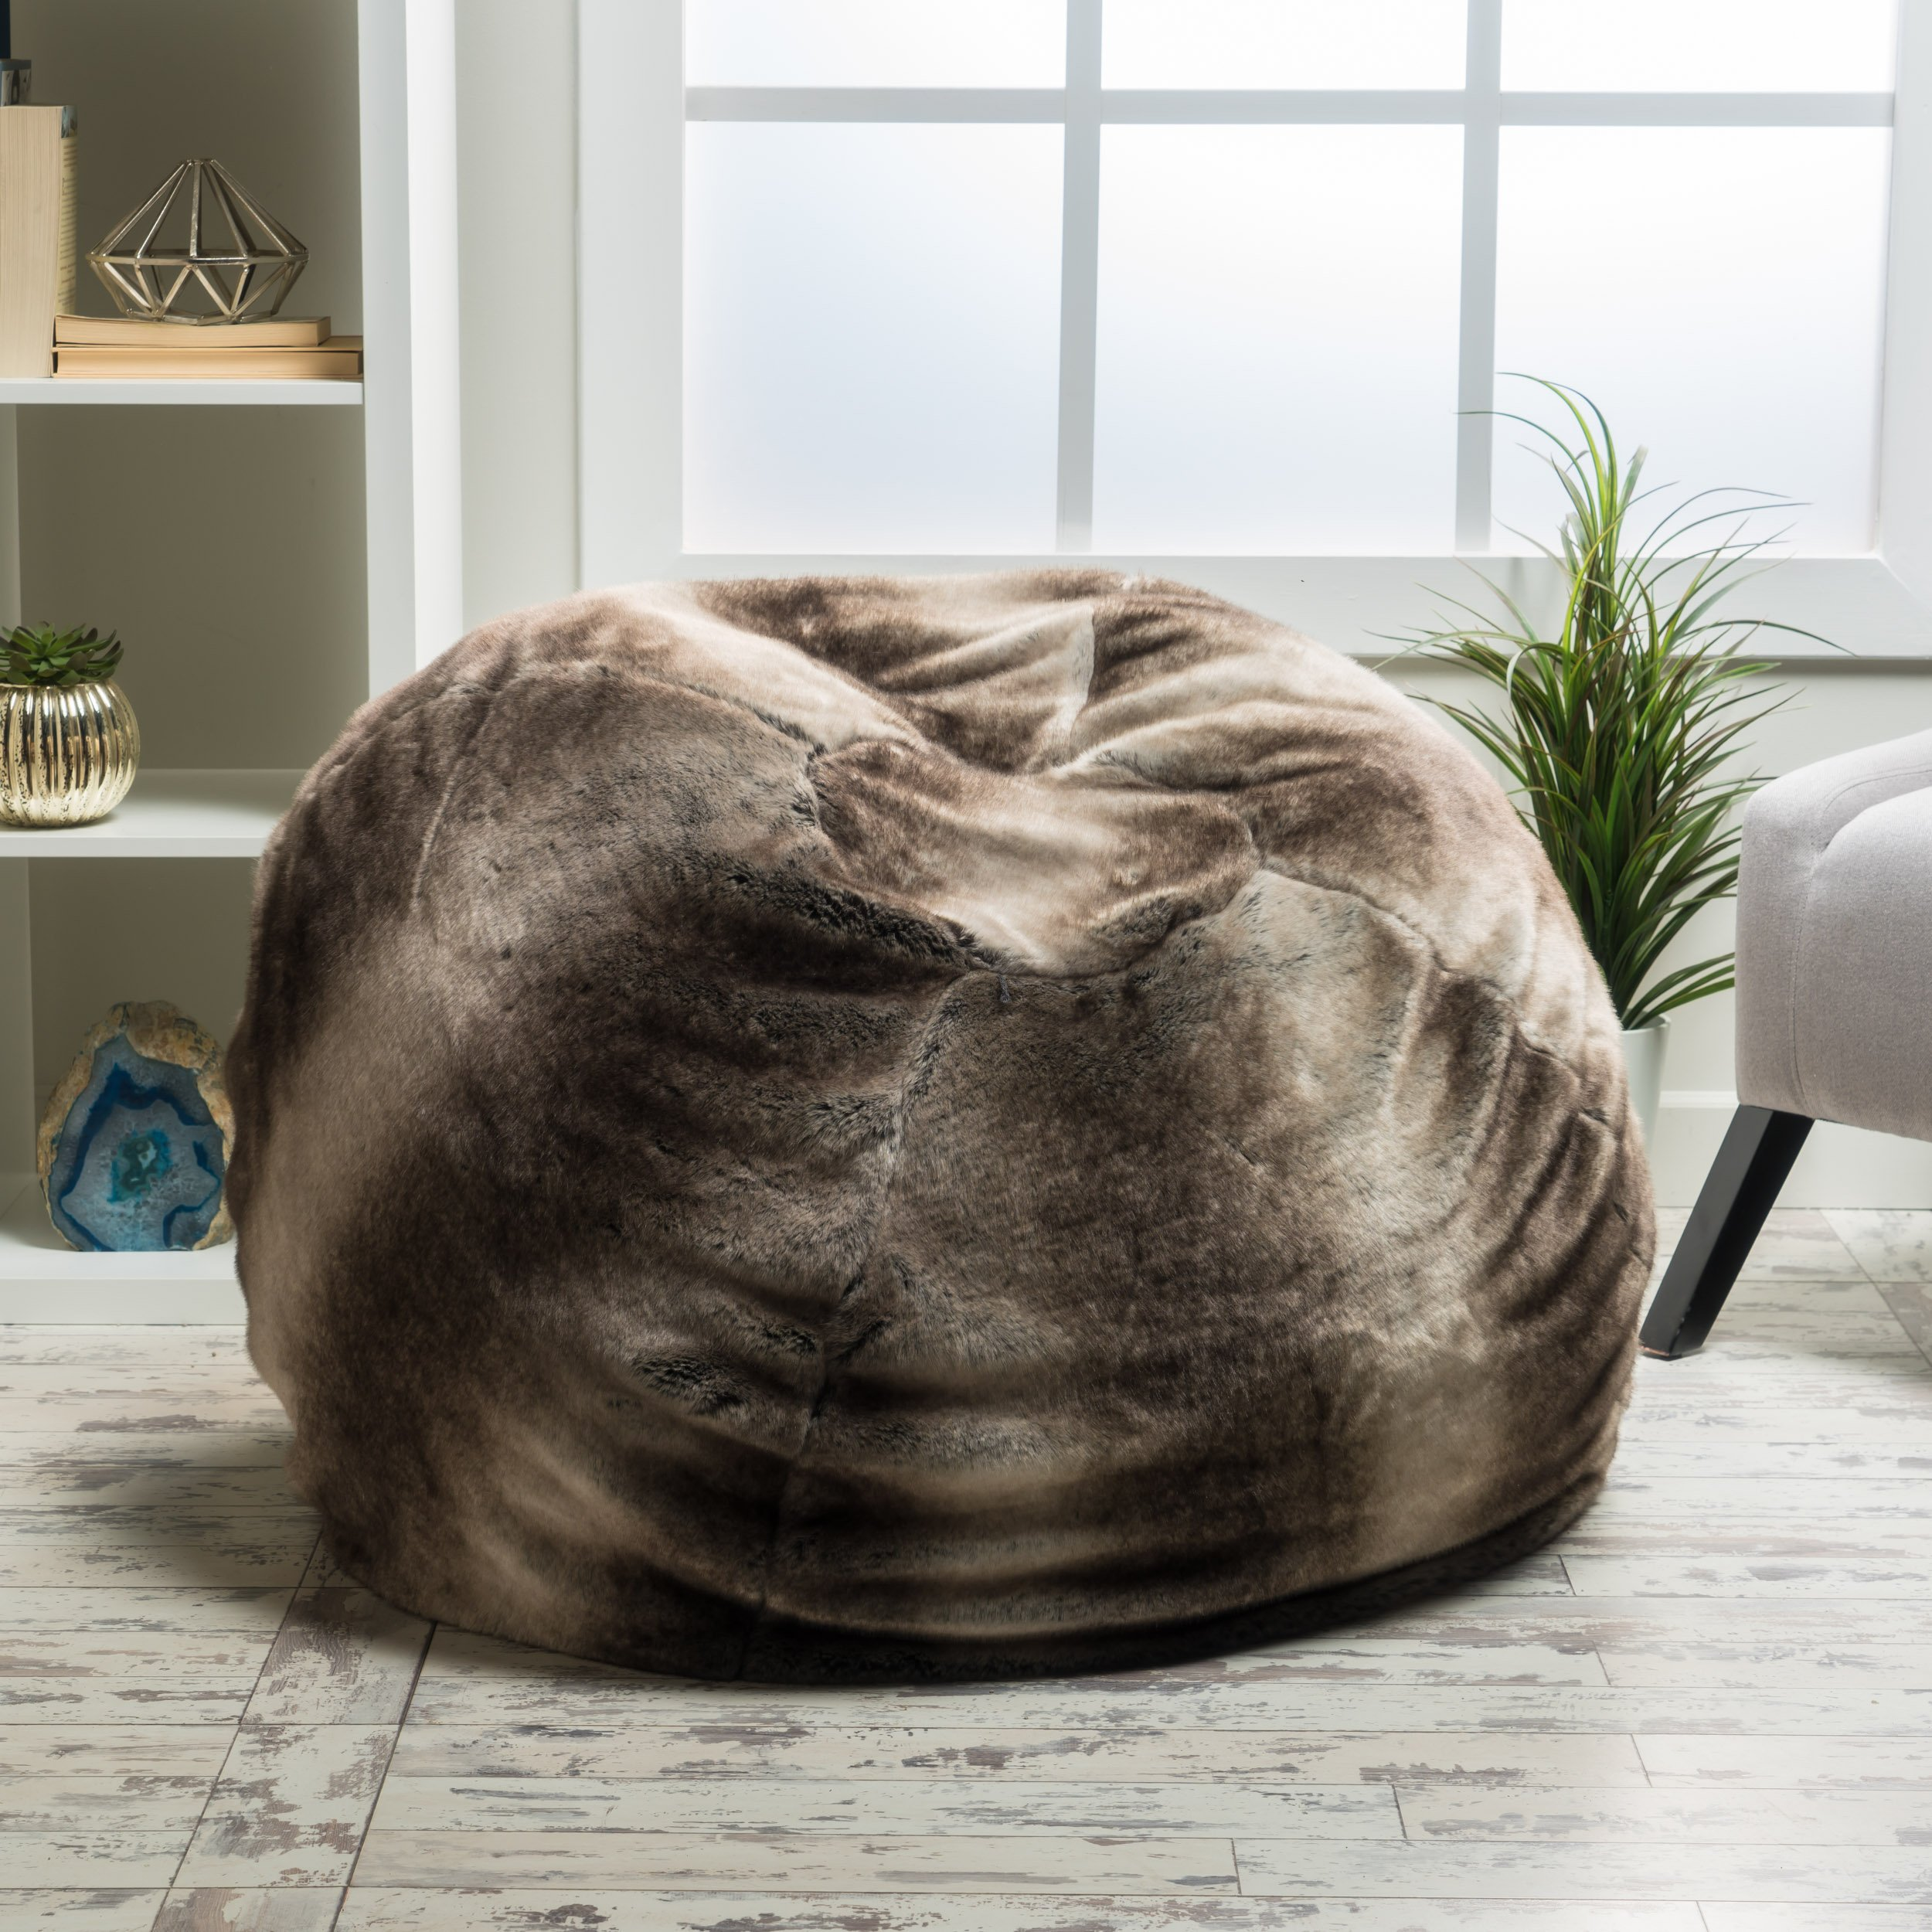 Meridian Bean Bag Chair | Plush Faux Fur Chair | Comfortable and Fun Beanbag for the Whole Family| Non-Spill Memory Foam Filling (Ash White) by GDFStudio